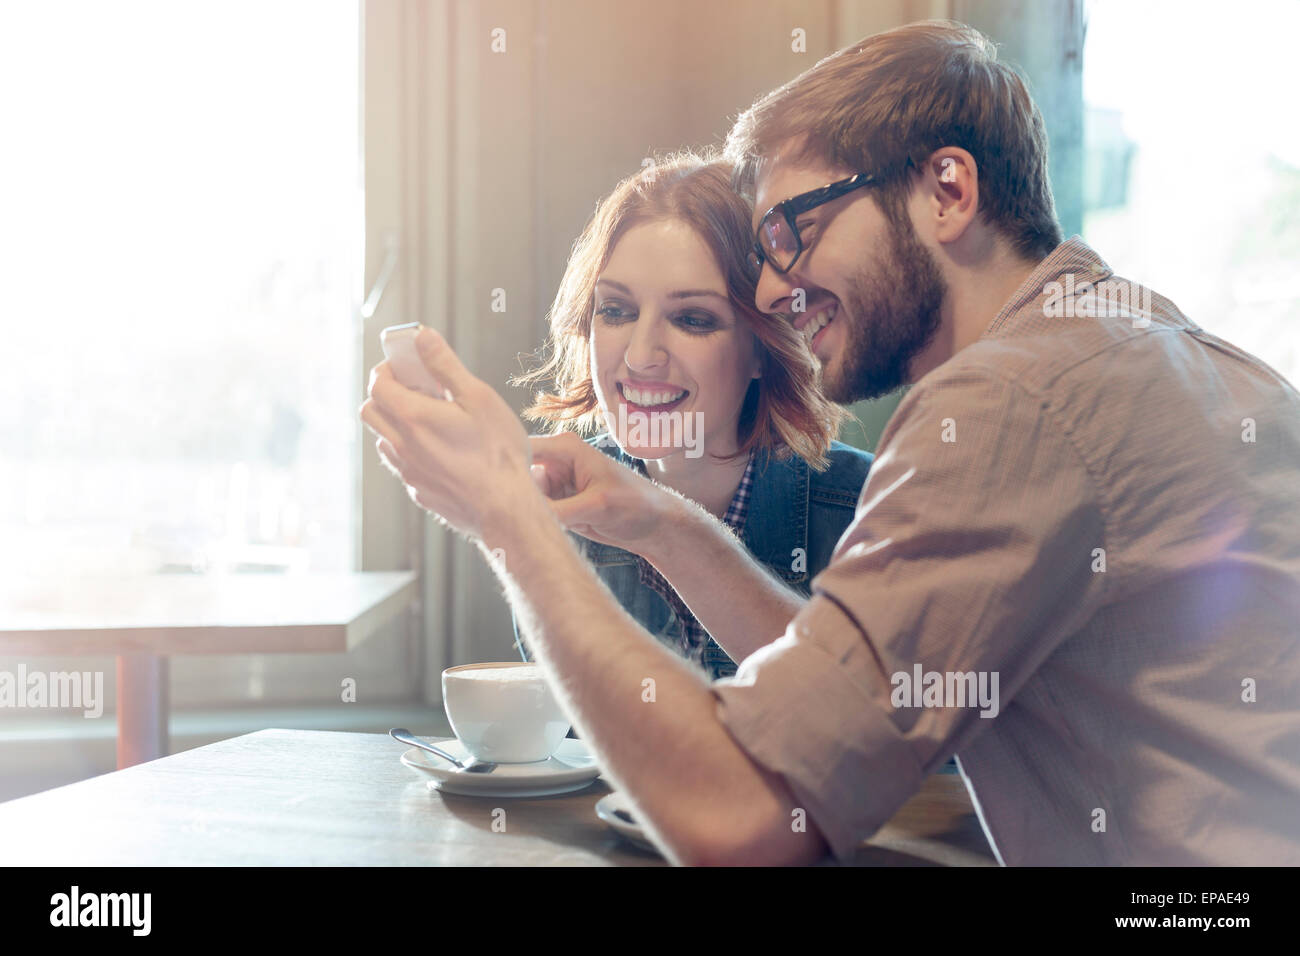 heterosexual couple using cell phone cafe - Stock Image